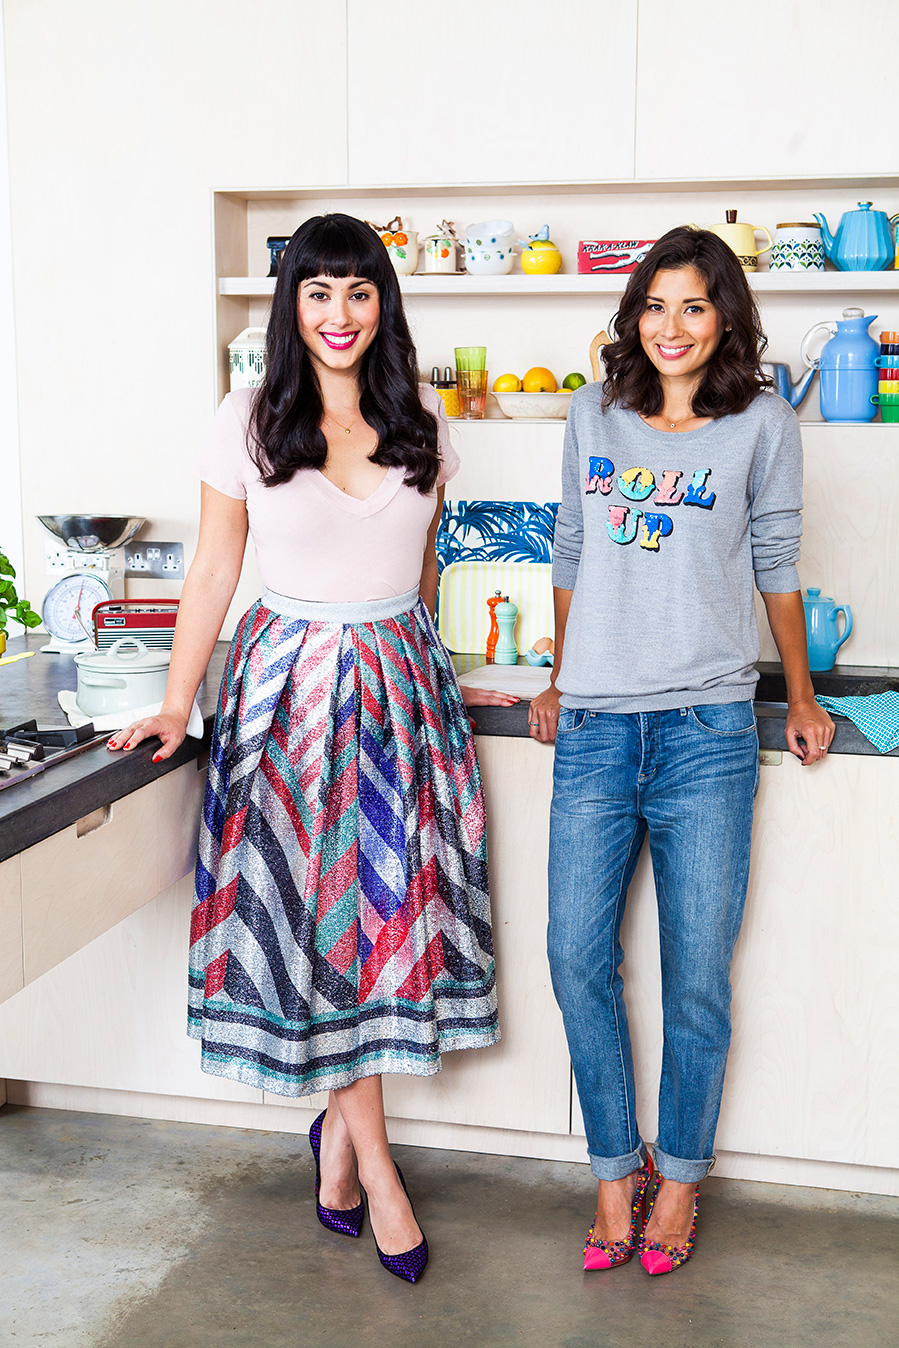 Hemsley + Hemsley 7 day eating plan : Healthy detox ...